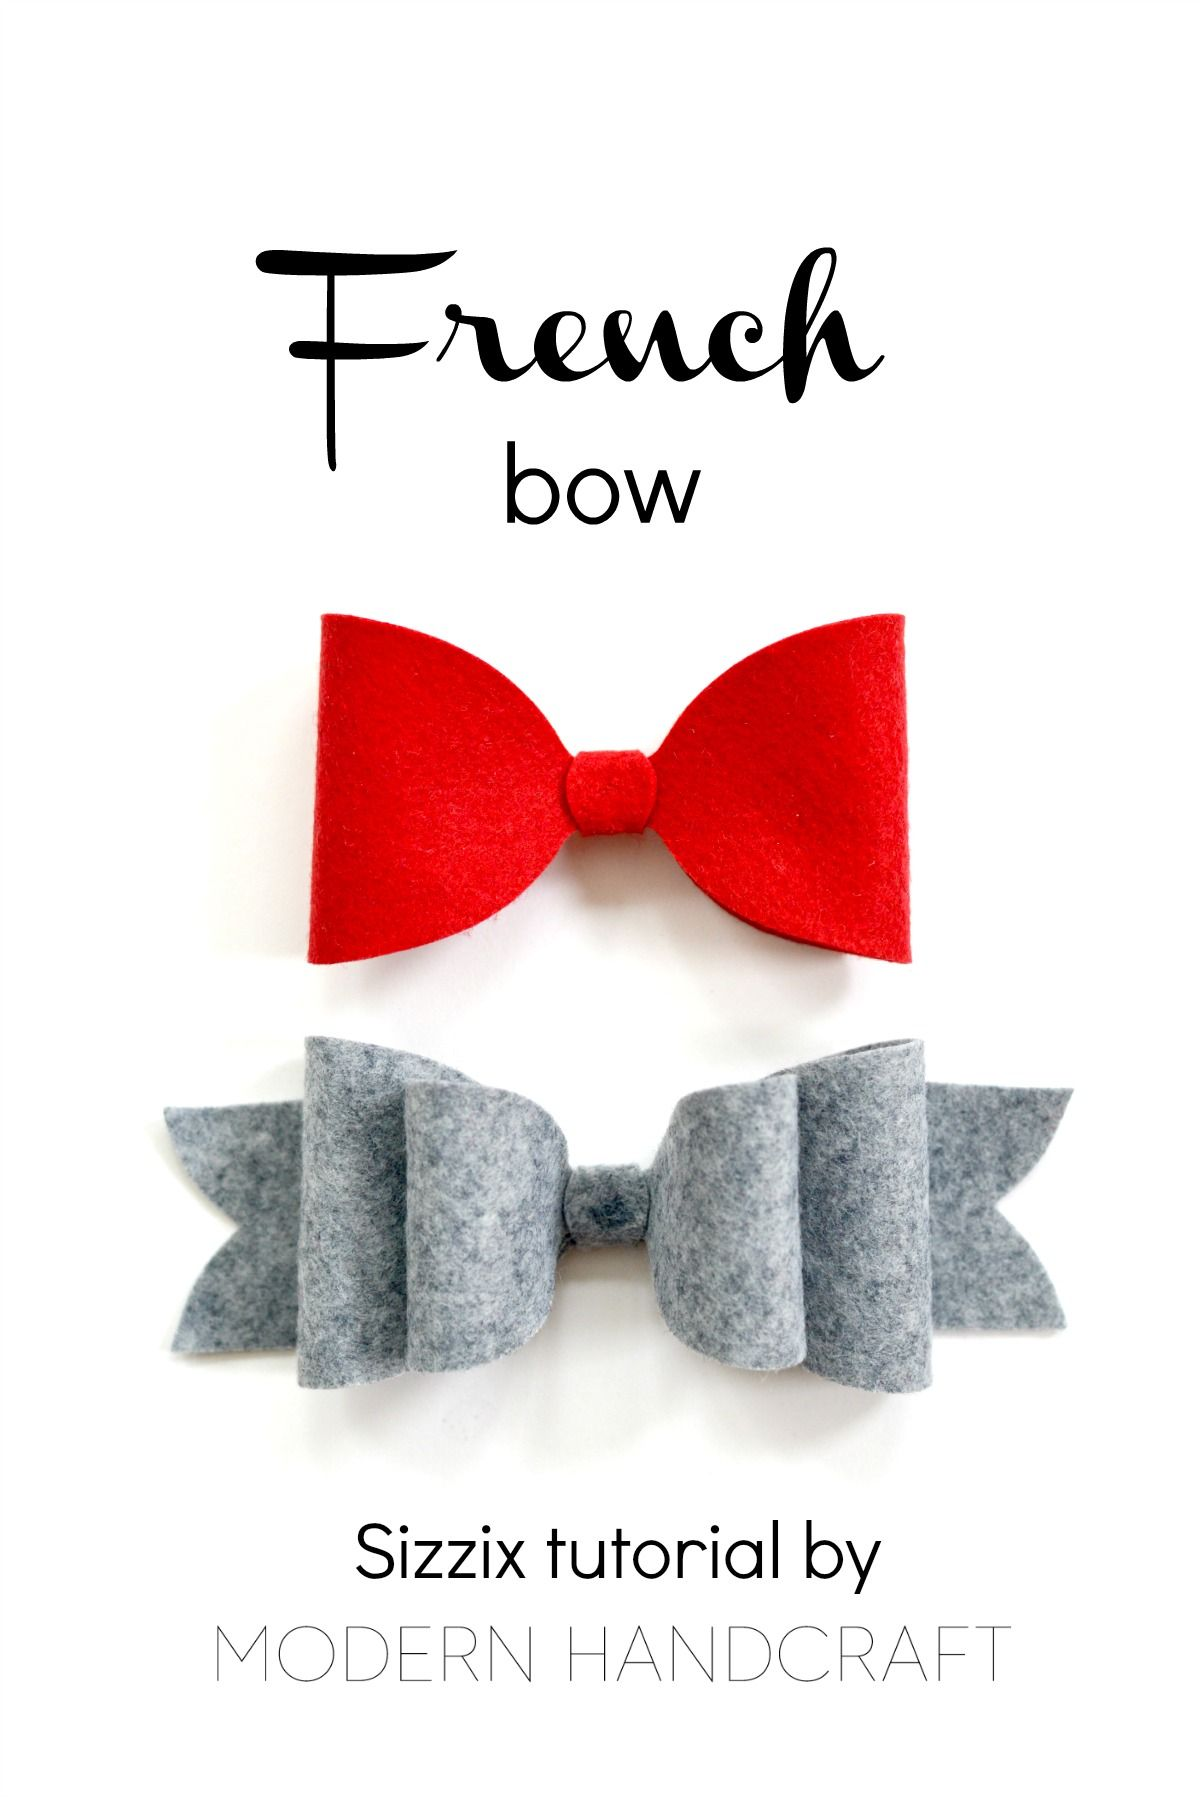 Modern handcraft felt french bow sizzix tutorial my work modern handcraft felt french bow sizzix tutorial pronofoot35fo Image collections